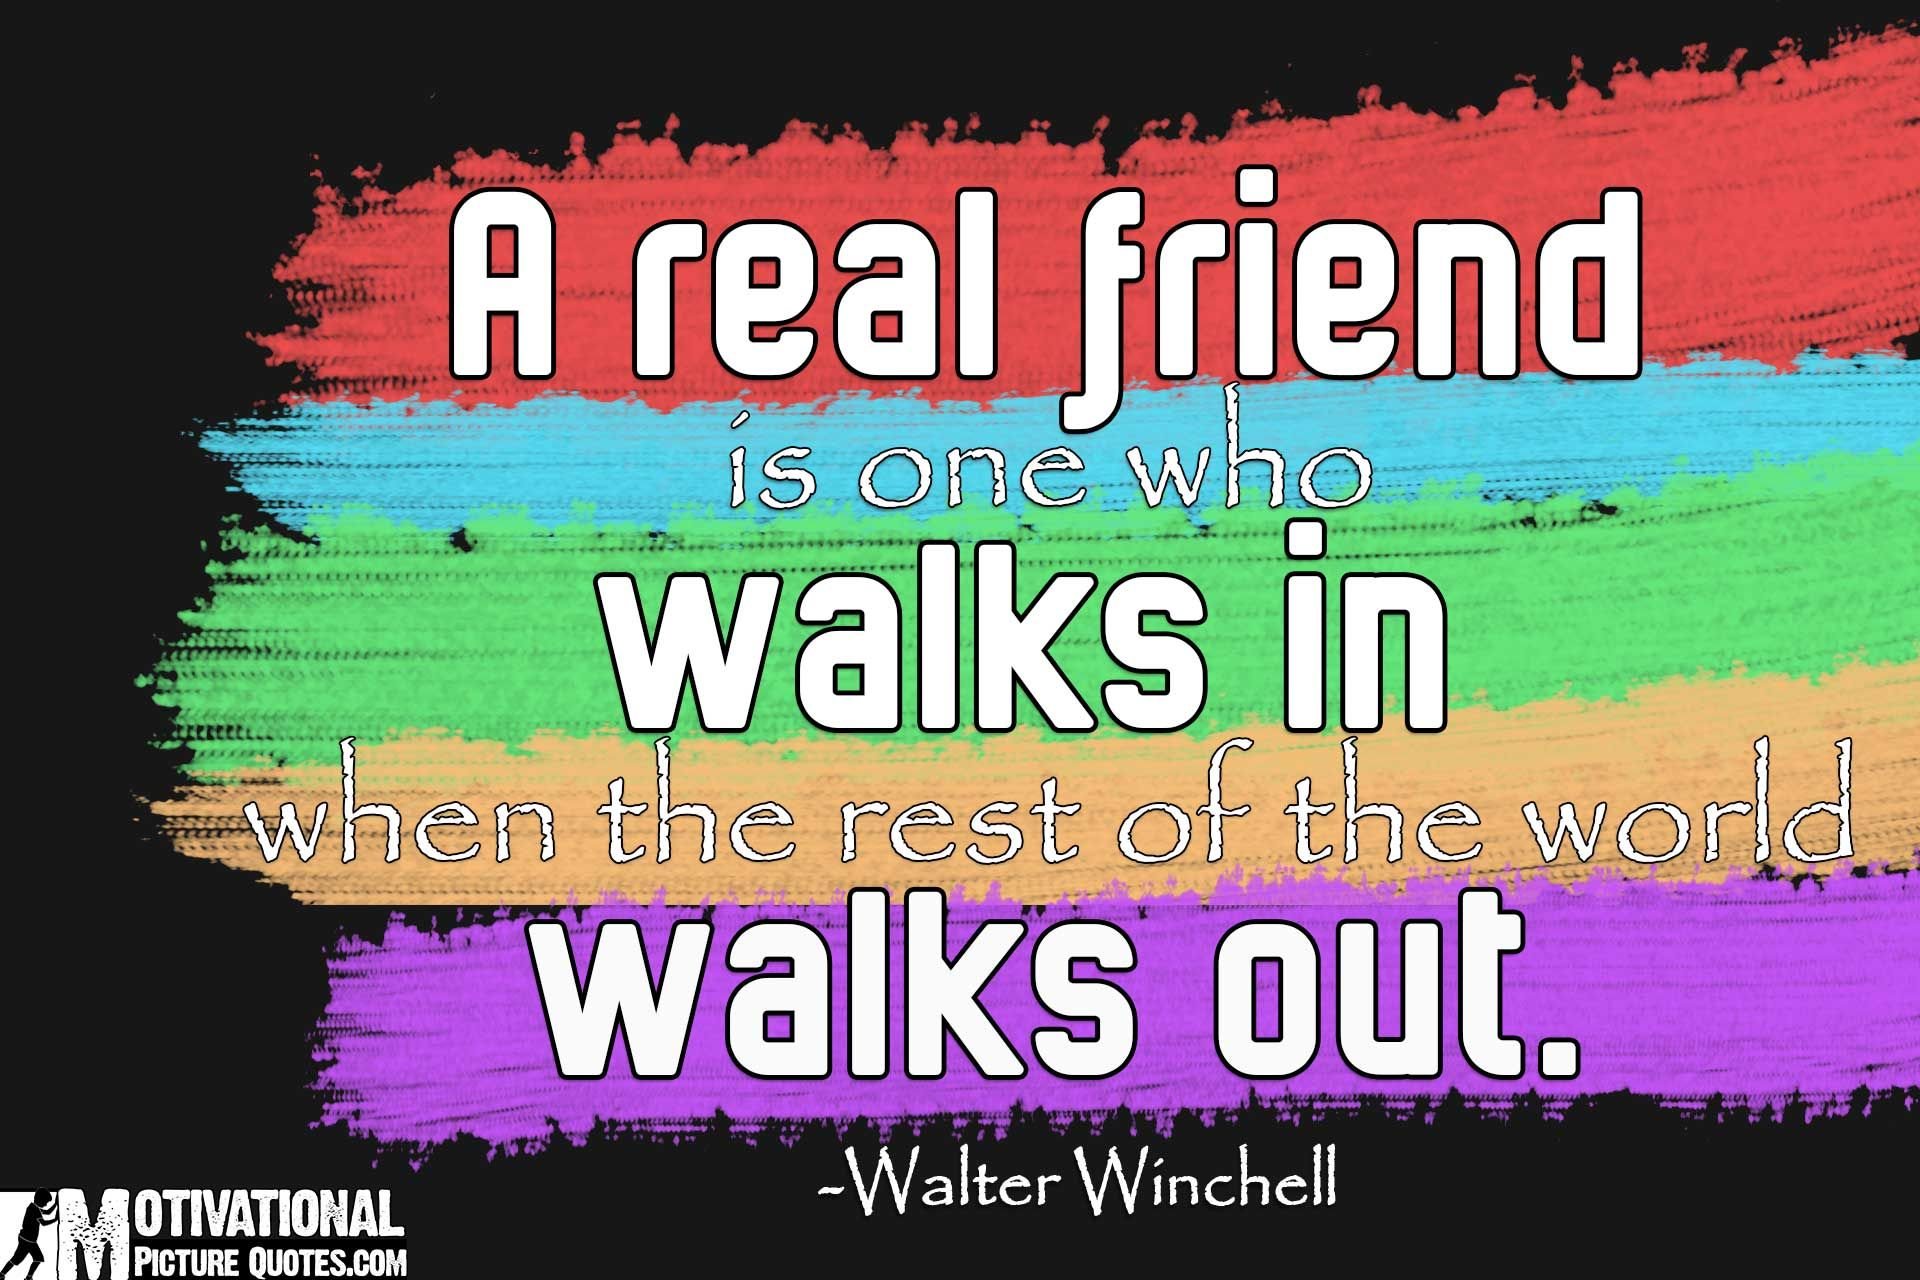 Inspirational Quote About Friendship Inspiring Friendship Quotes With Images  Friendship Quotes Images